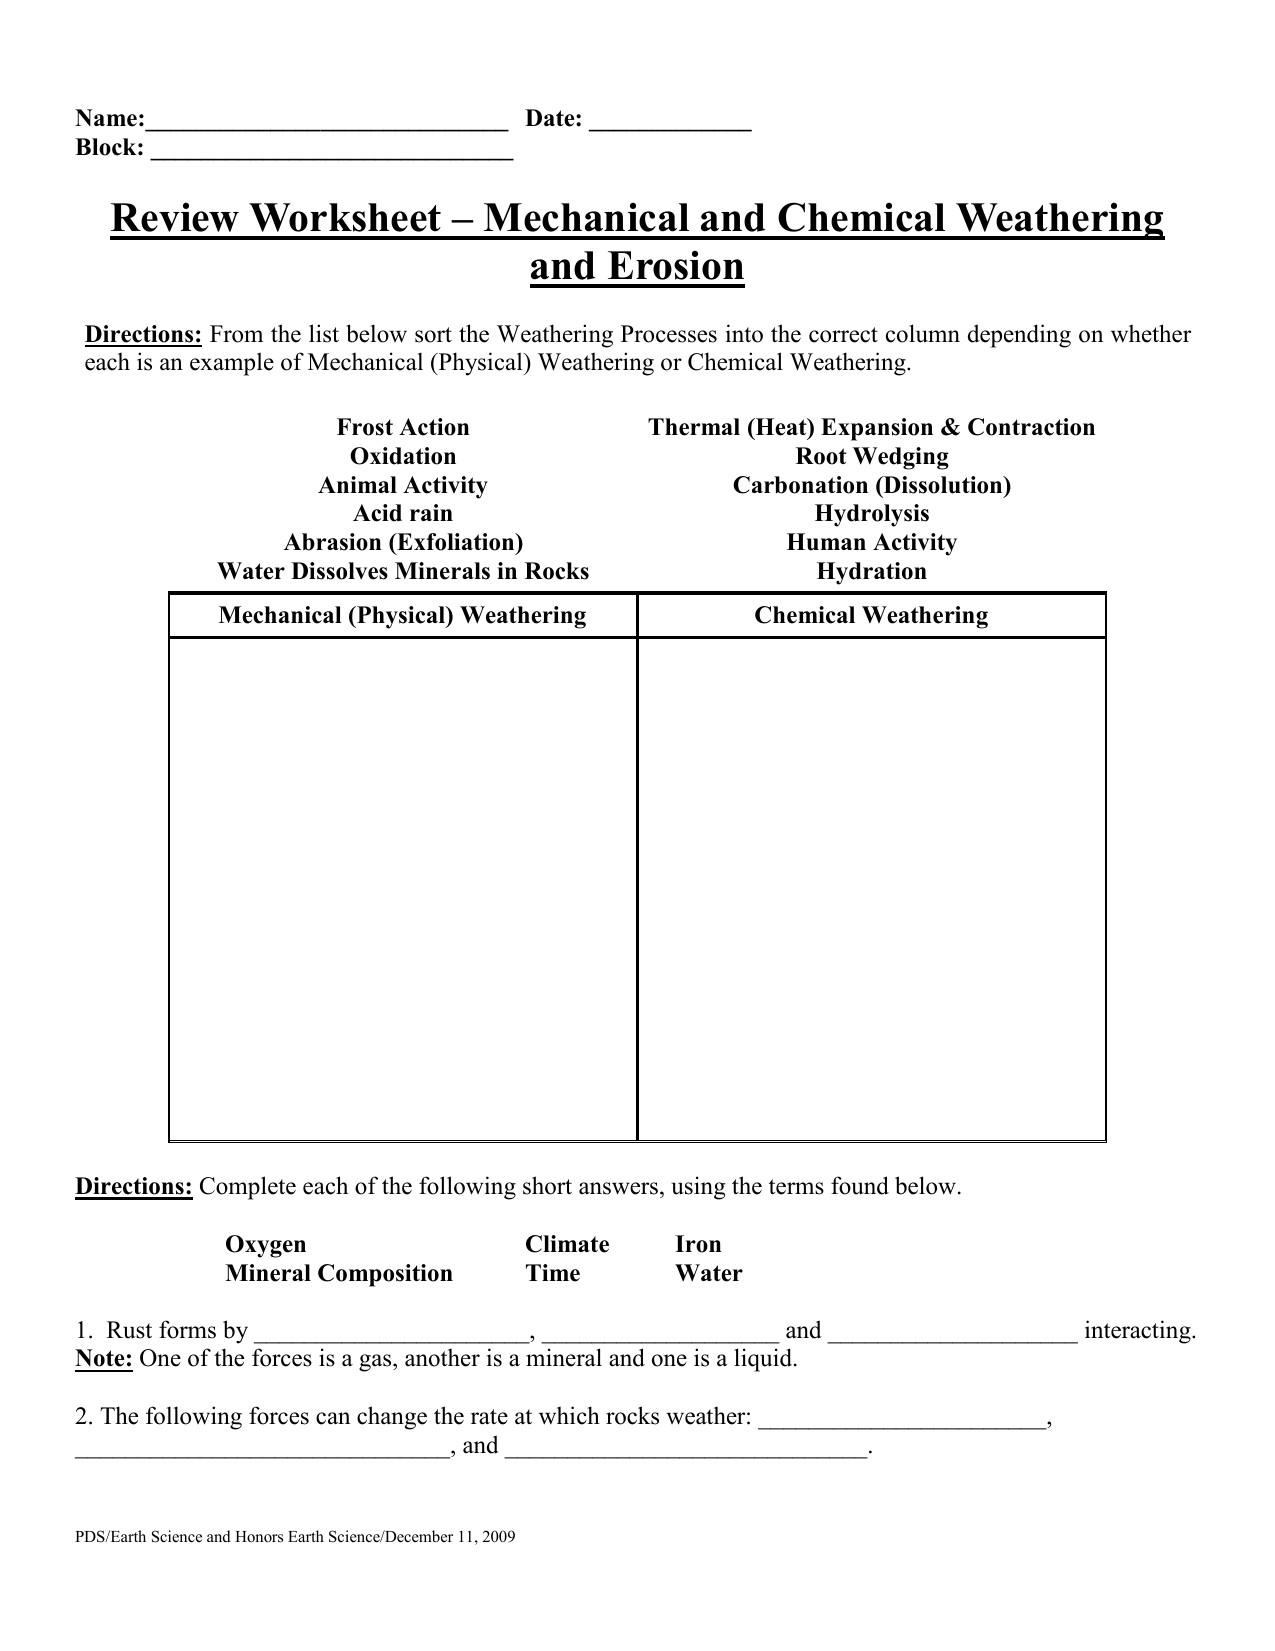 Review Worksheet – Mechanical and Chemical Weathering and